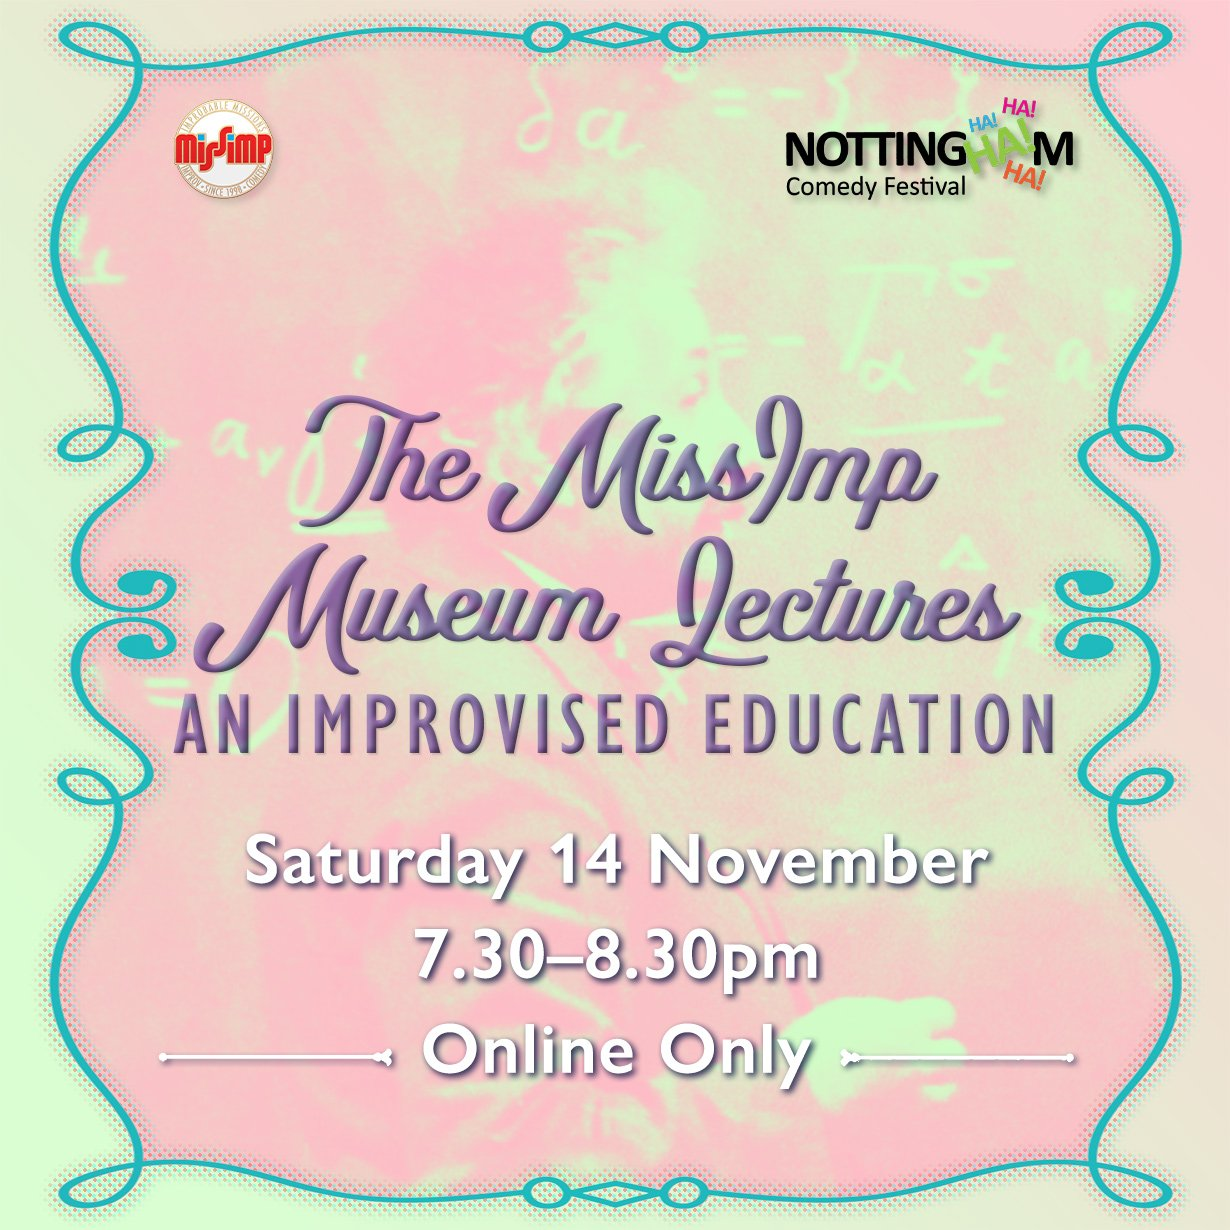 The MissImp Museum Lectures, An Improvised Education - NCF 202